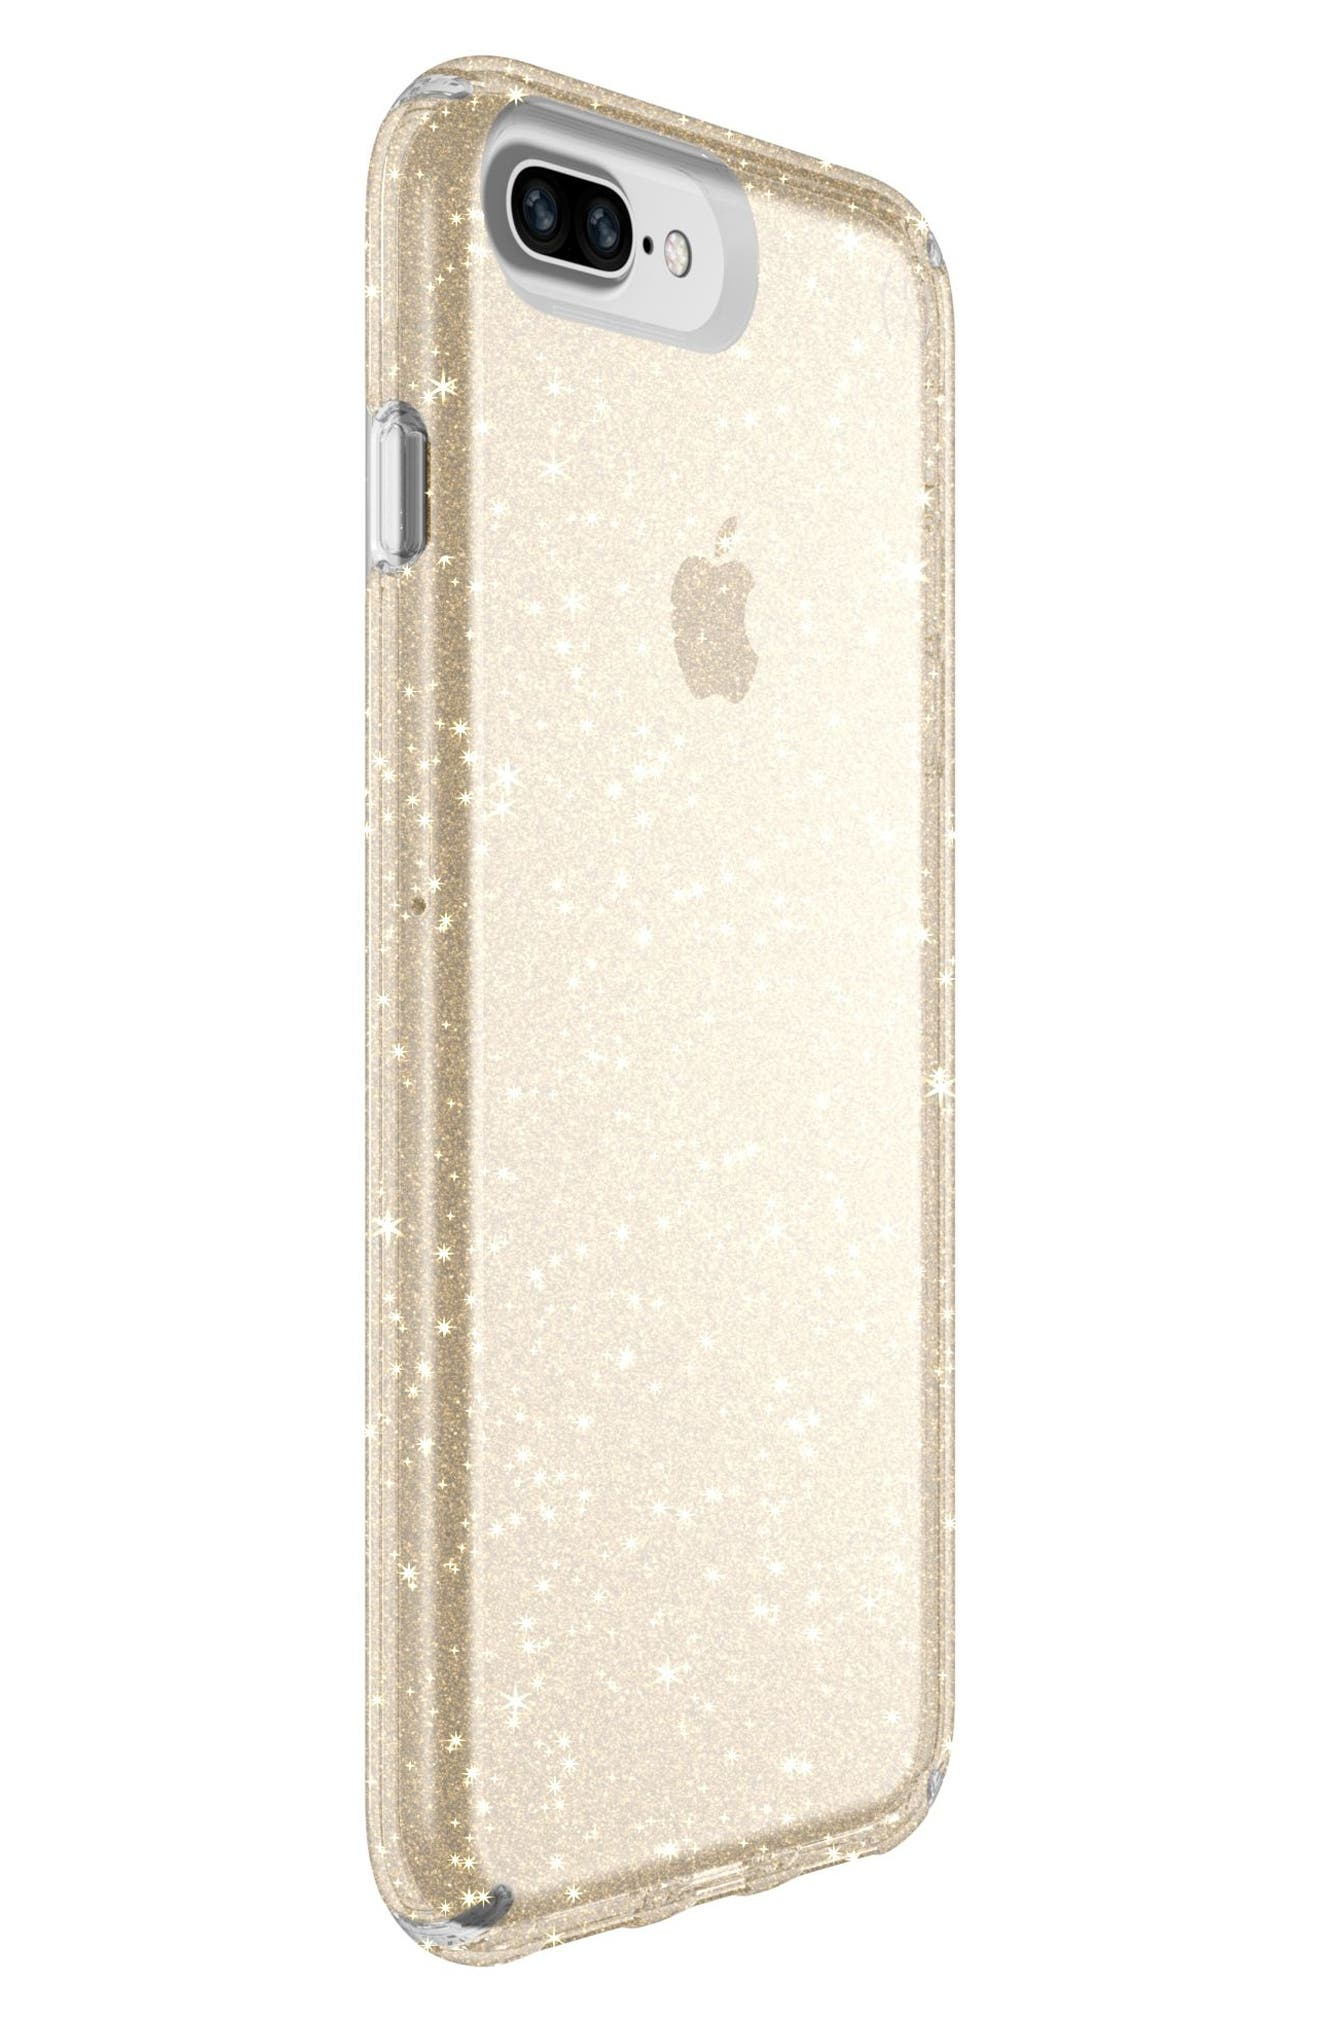 iPhone 6/6s/7/8 Plus Case,                             Alternate thumbnail 2, color,                             Clear With Gold Glitter/ Clear